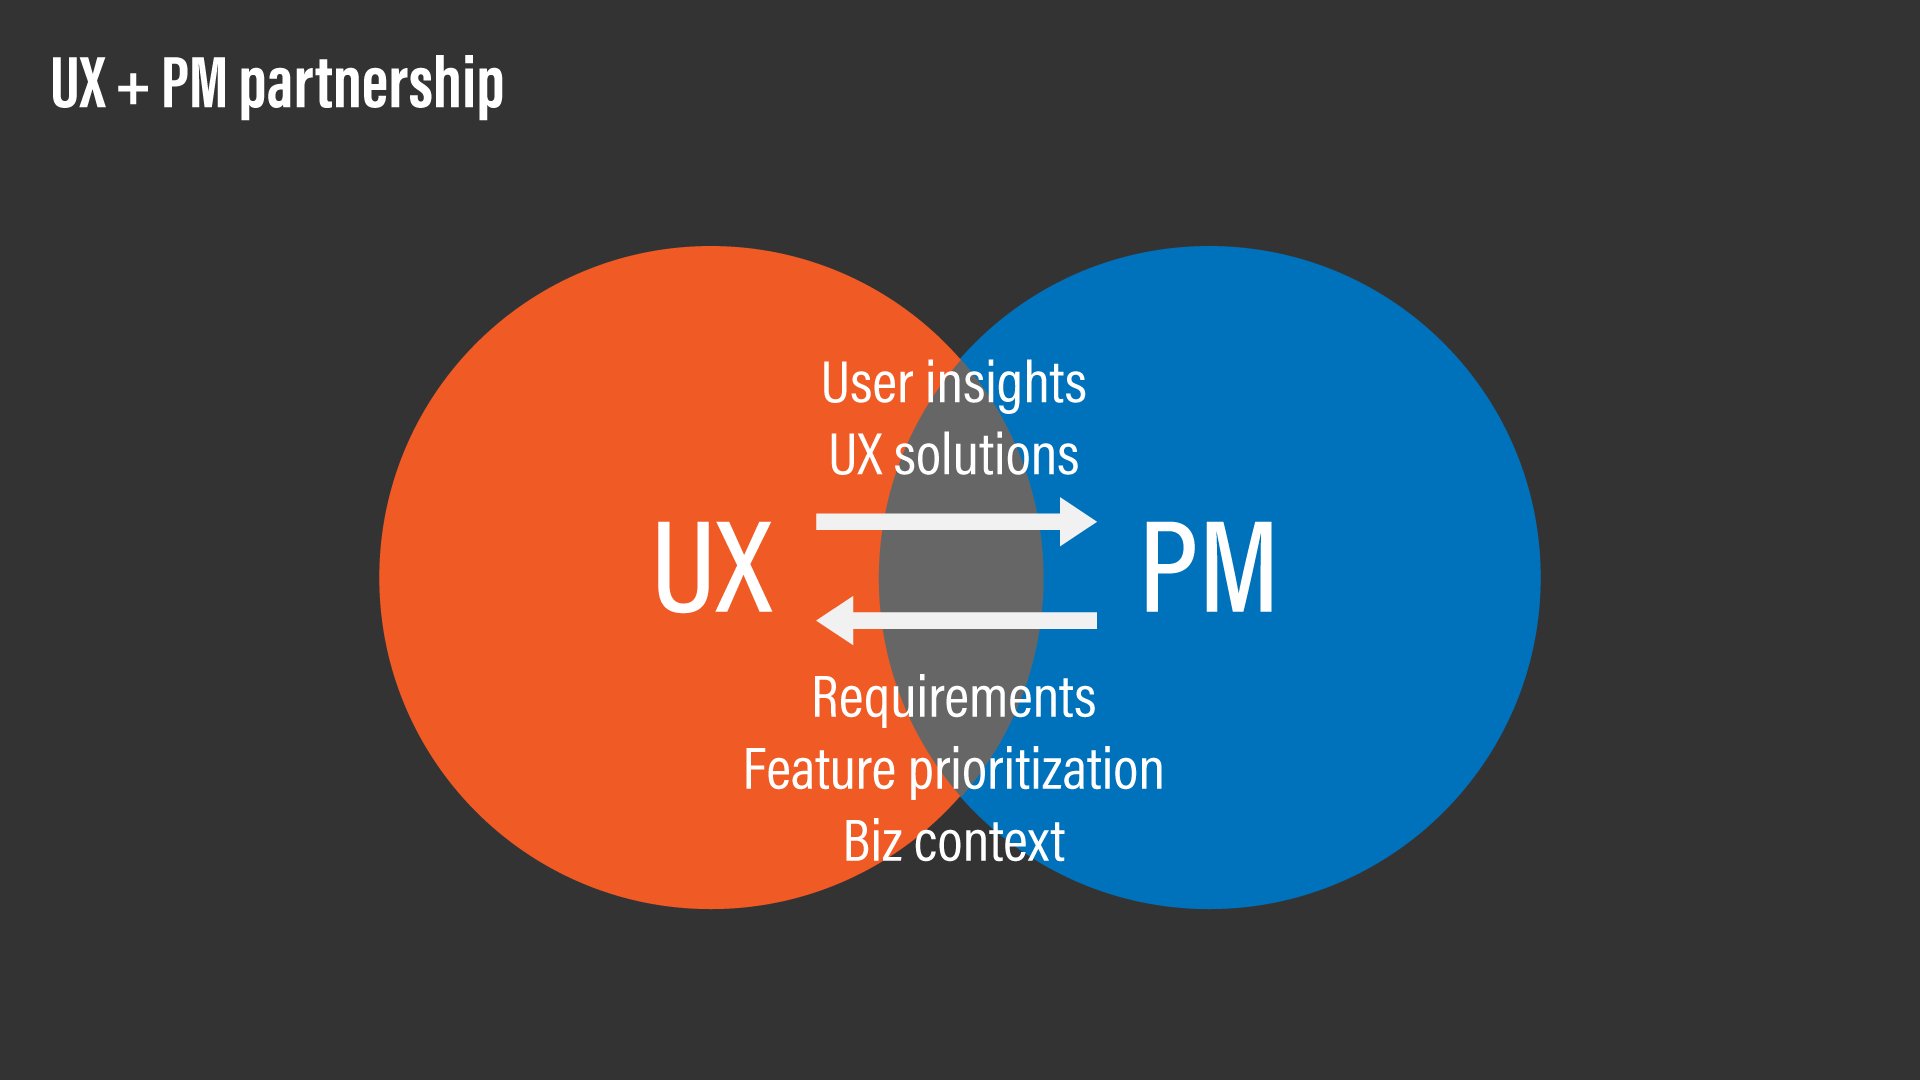 A conceptual diagram showing the criticality of UX + PM partnership.